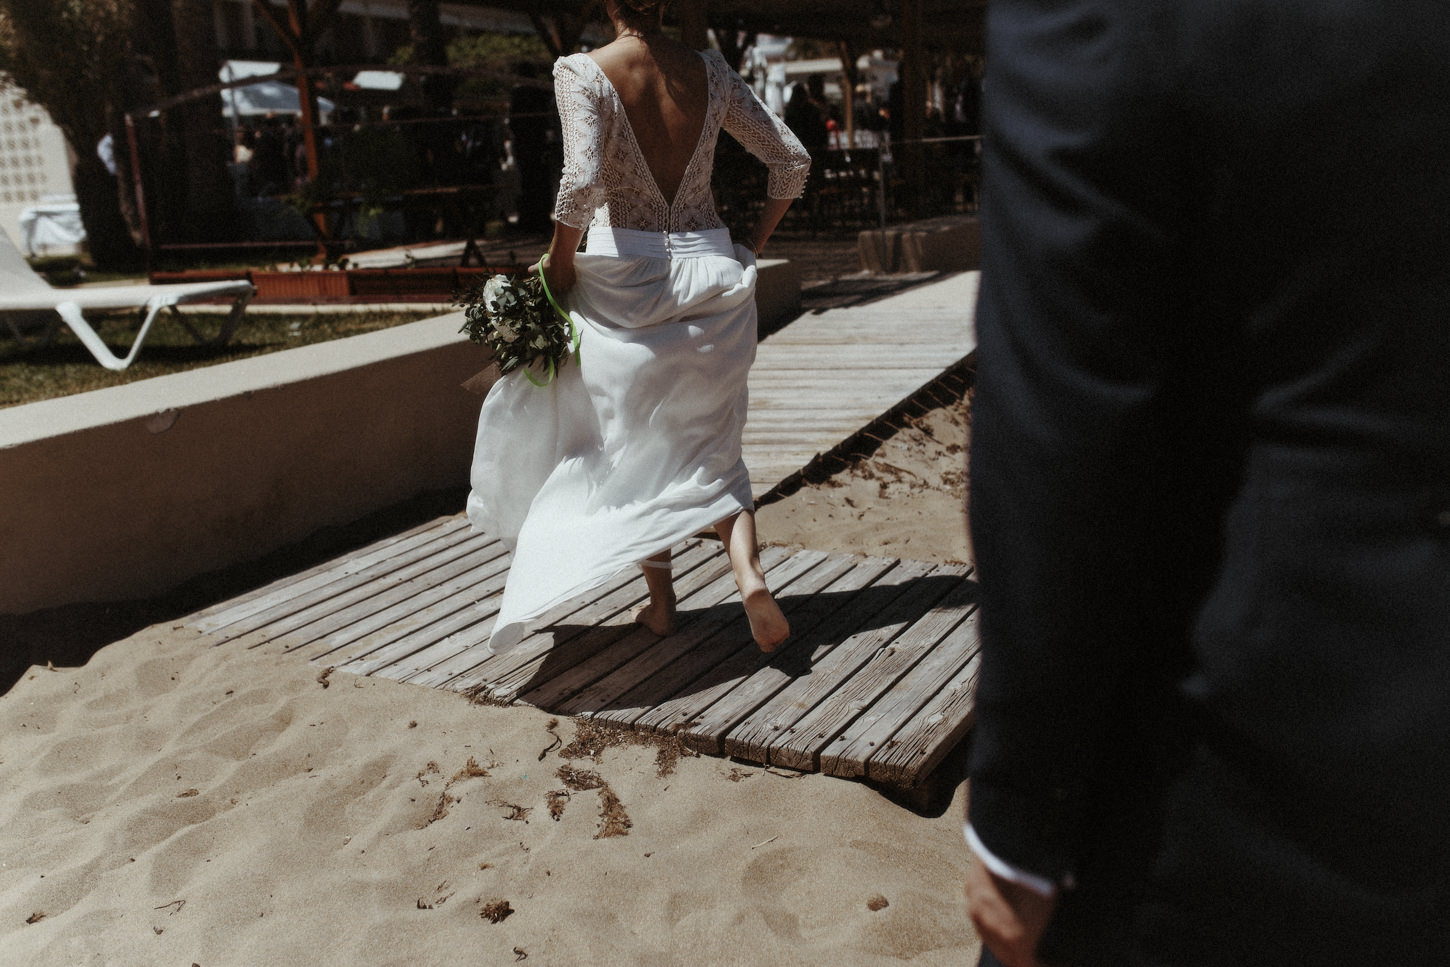 Mar & Fer | Boda en la playa de Denia